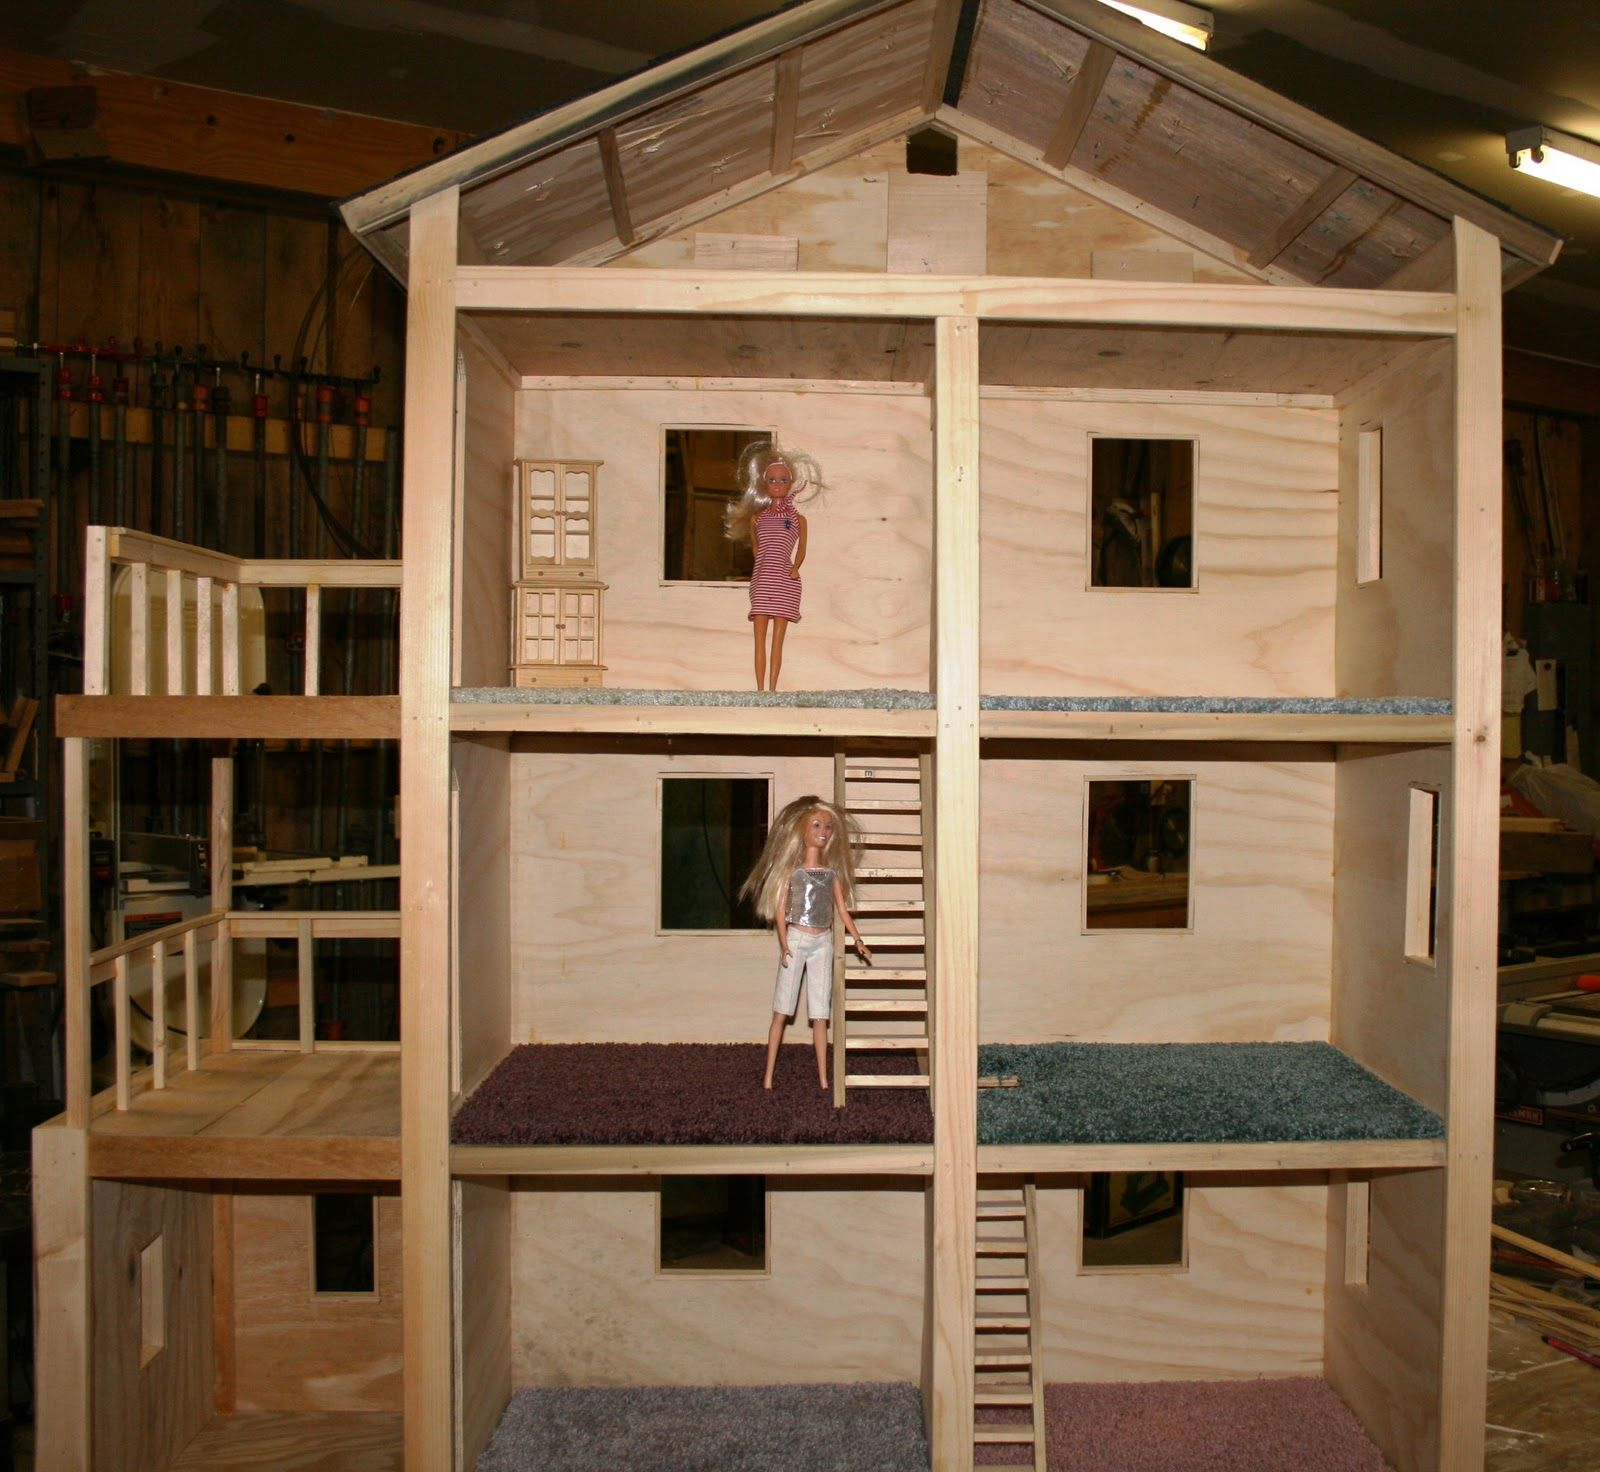 homemade barbie house My friend told me about a small